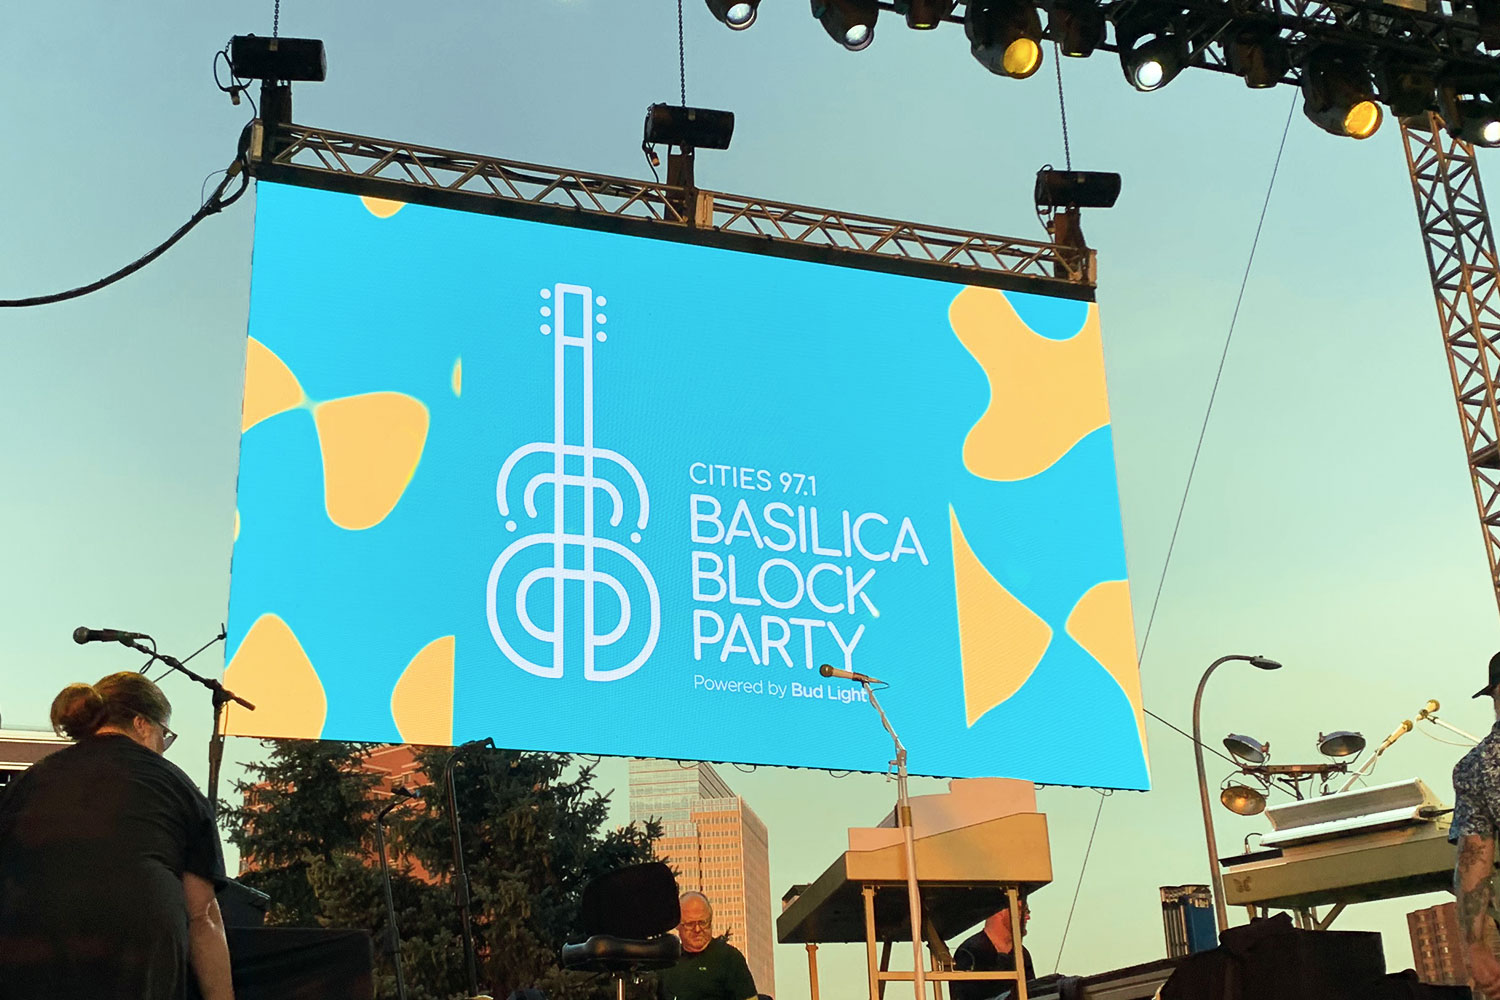 jackson-cobb-design-basilica-block-party-2.jpg